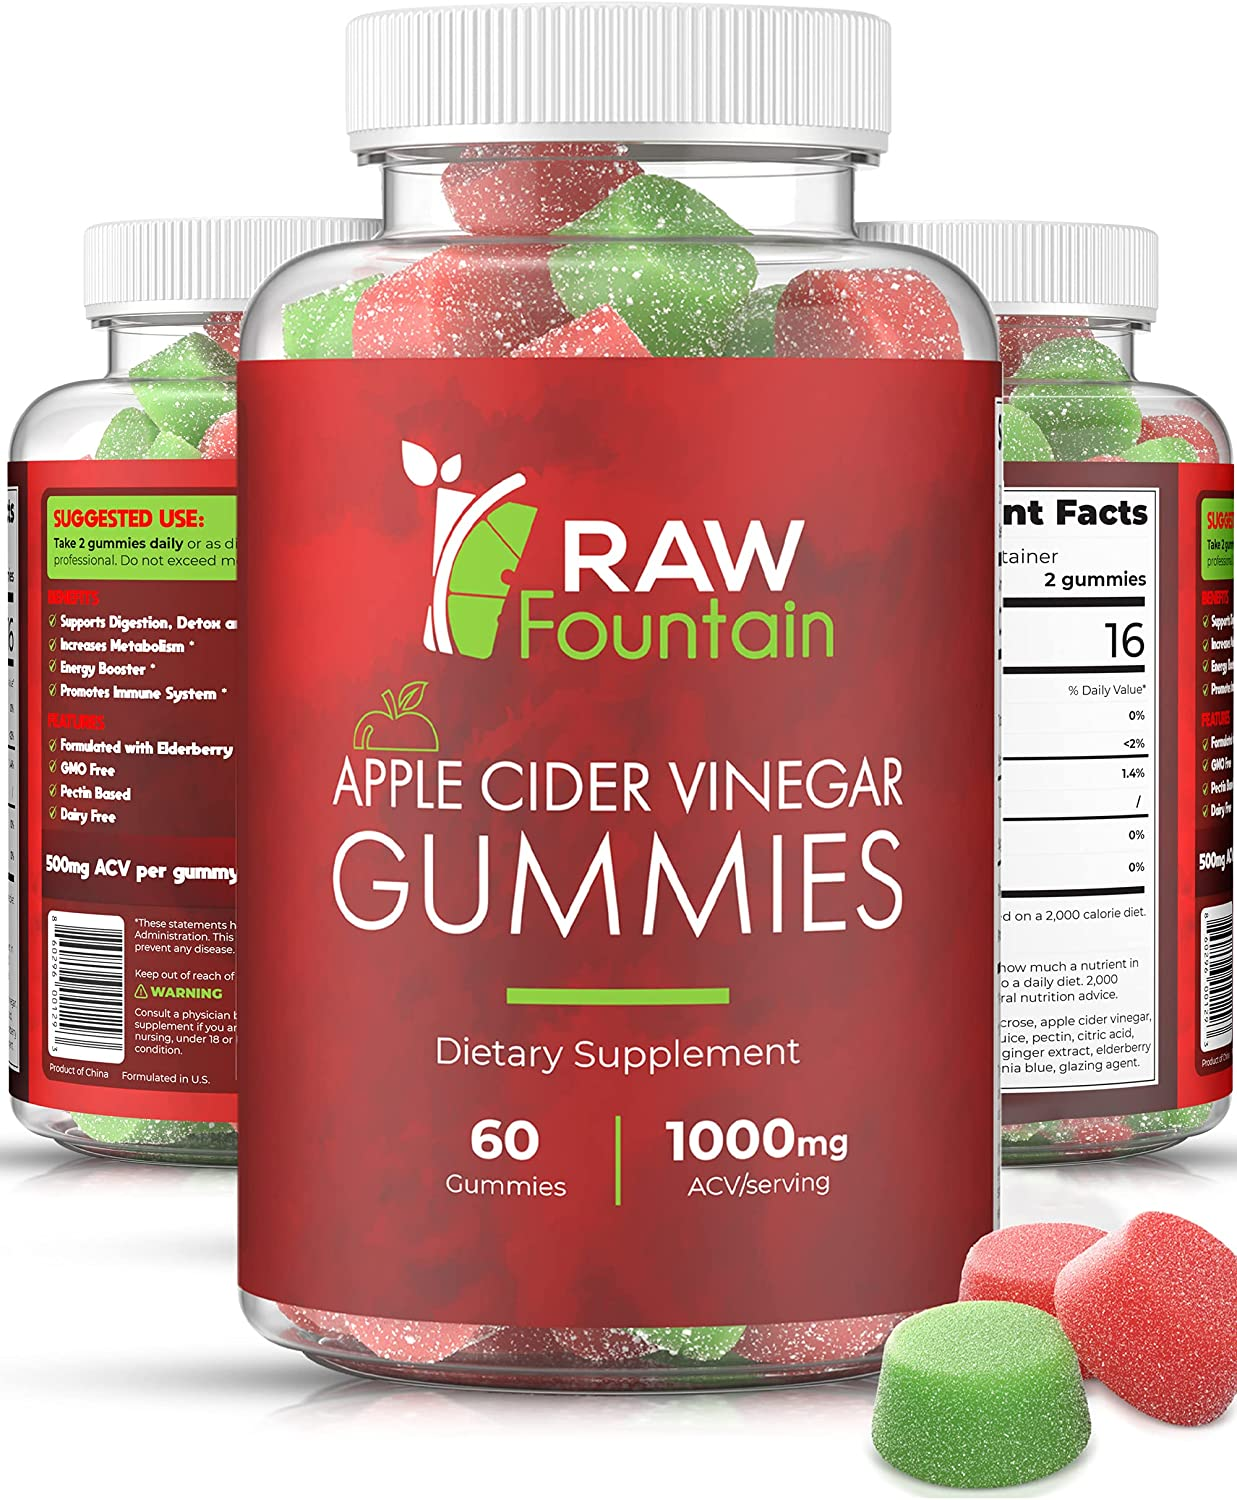 Raw Fountain Apple Cider Vinegar Gummies 1000mg, All Natural ACV Gummy Supplement with Elderberry, Ginger and Turmeric, Supports Immunity, Detox and Weight Loss, 60pcs